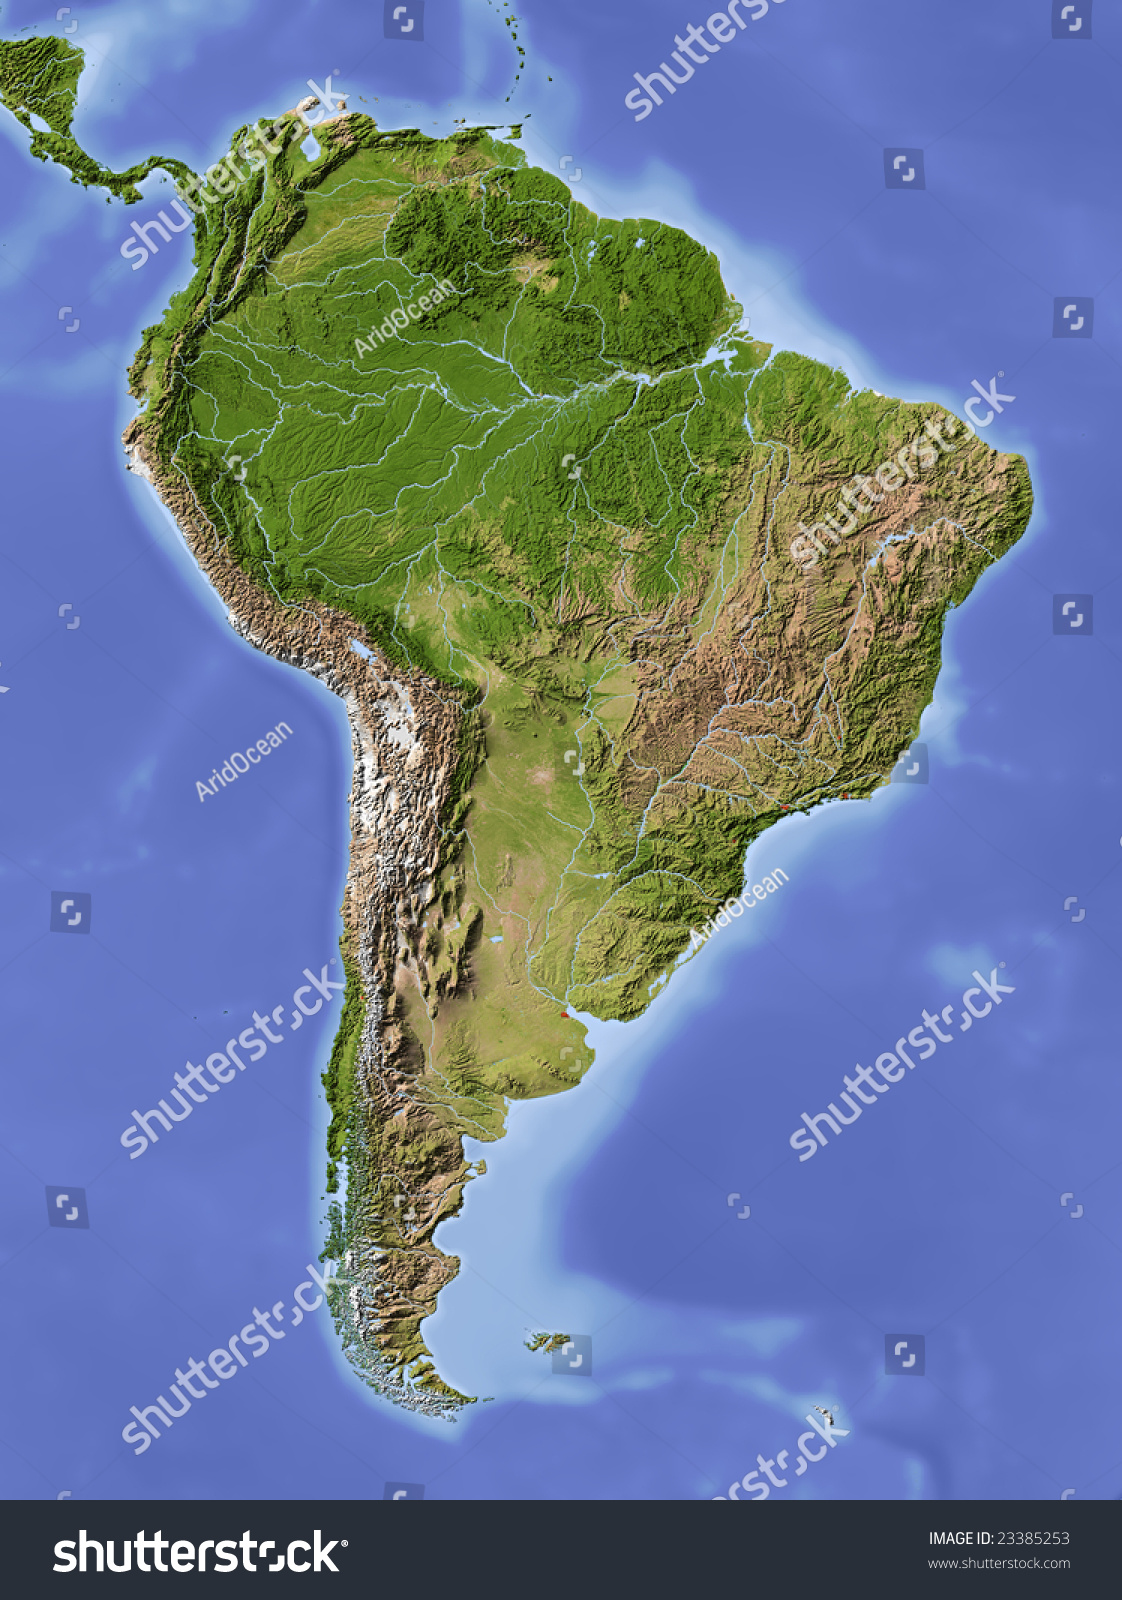 south america shaded relief map colored stock illustration